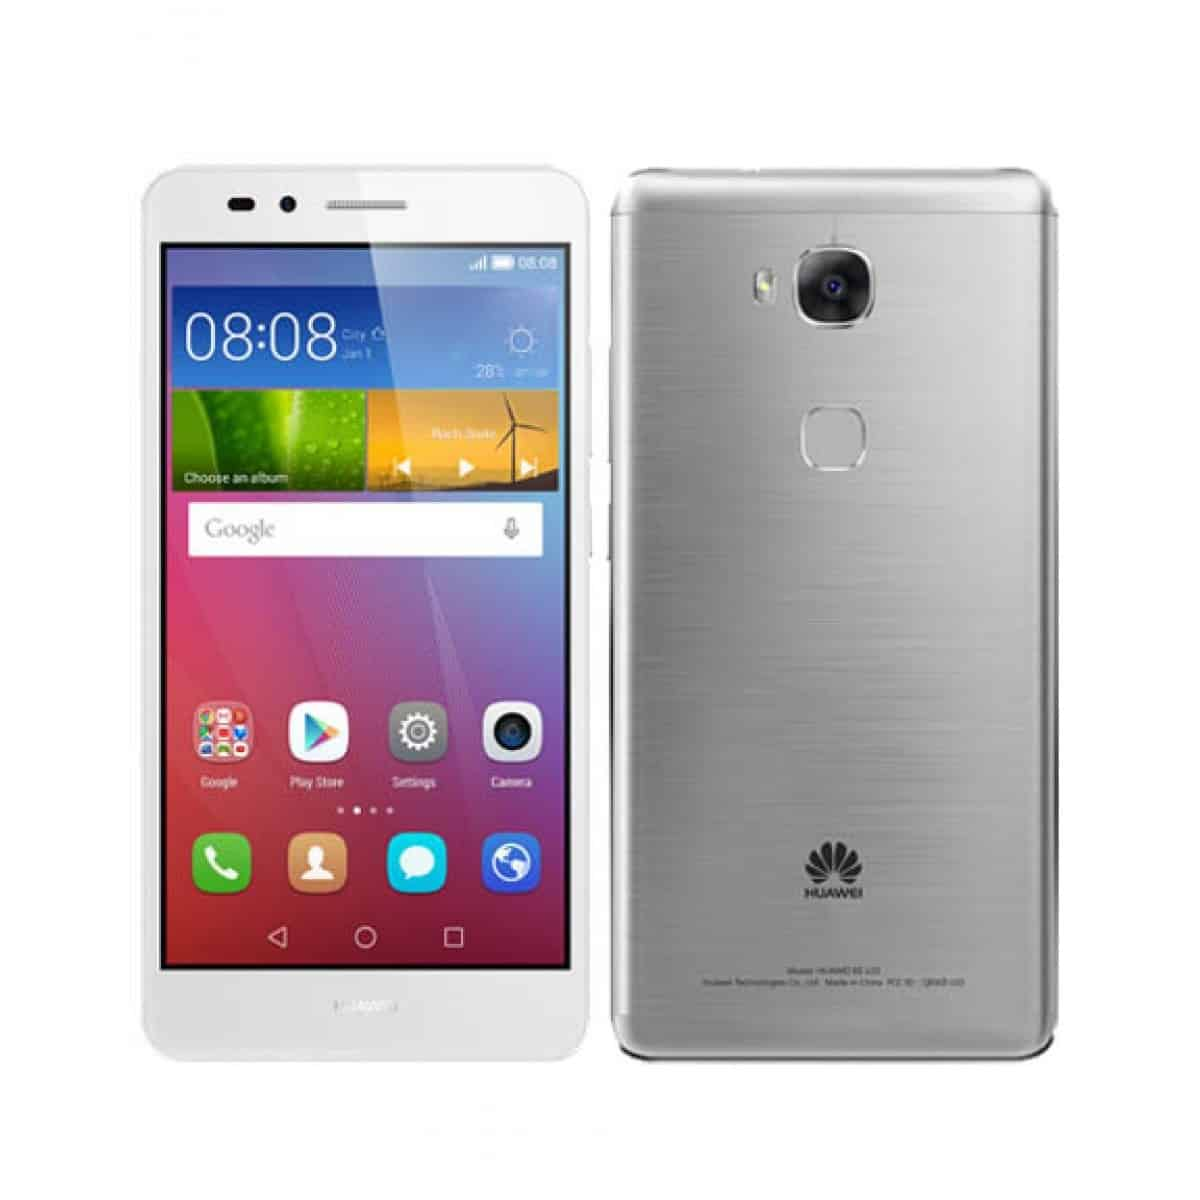 Huawei GR5 smart phone